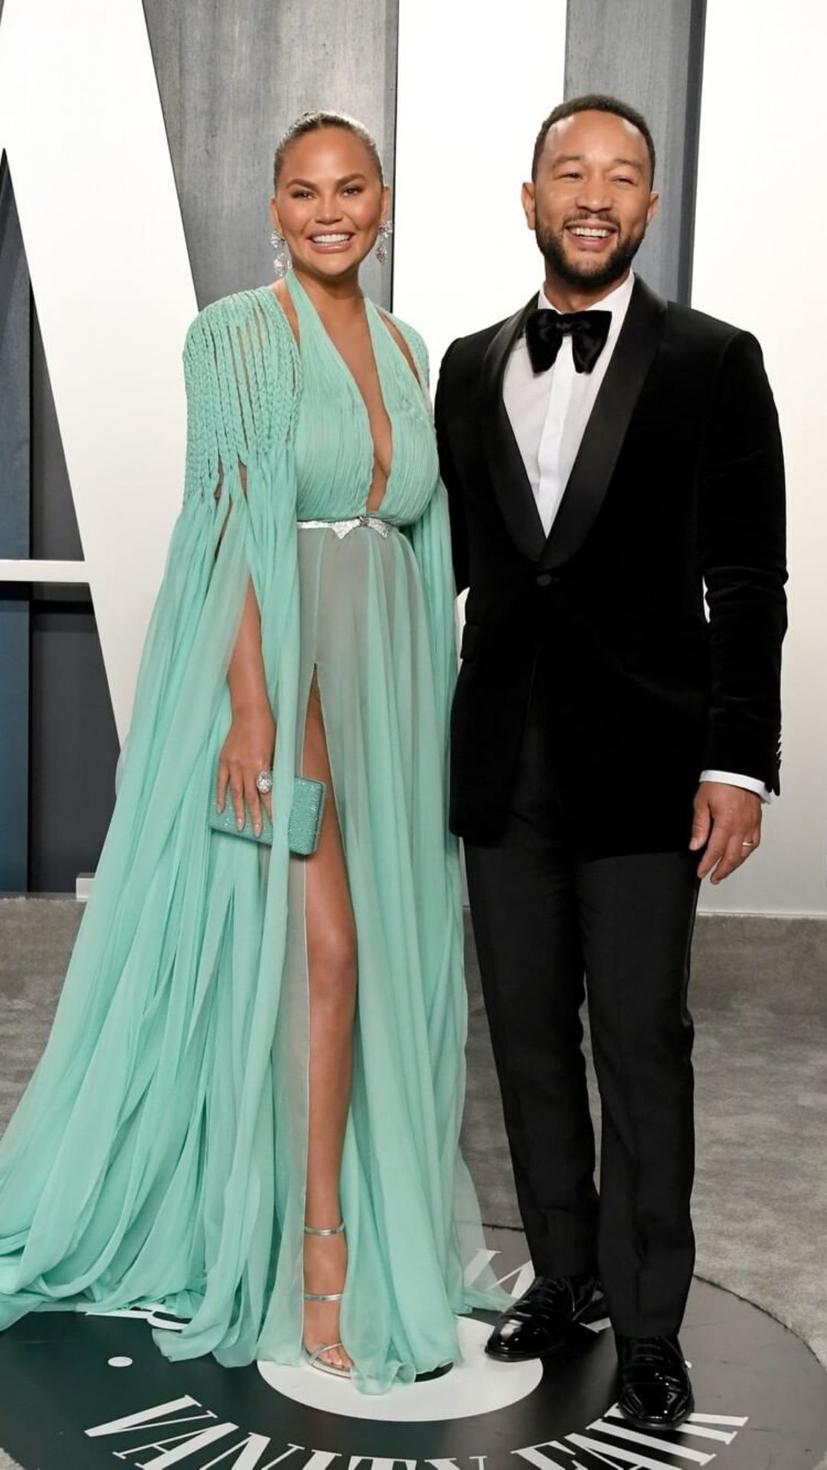 Chrissy Teigen wears Georges Hobeika S/S20 couture, and Heliopolis accessories. John Legend wears a Gucci tuxedo